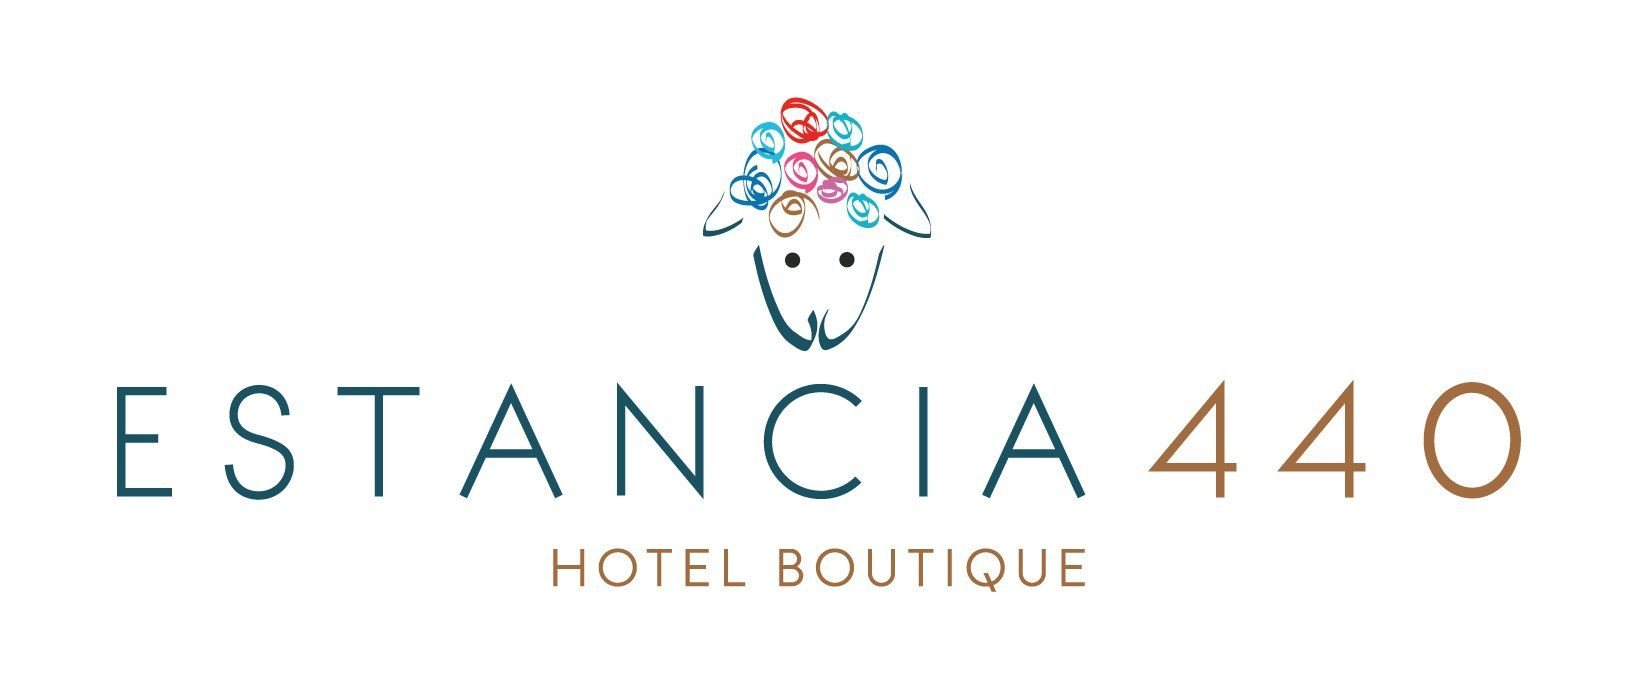 Estancia 440 Hotel Boutique